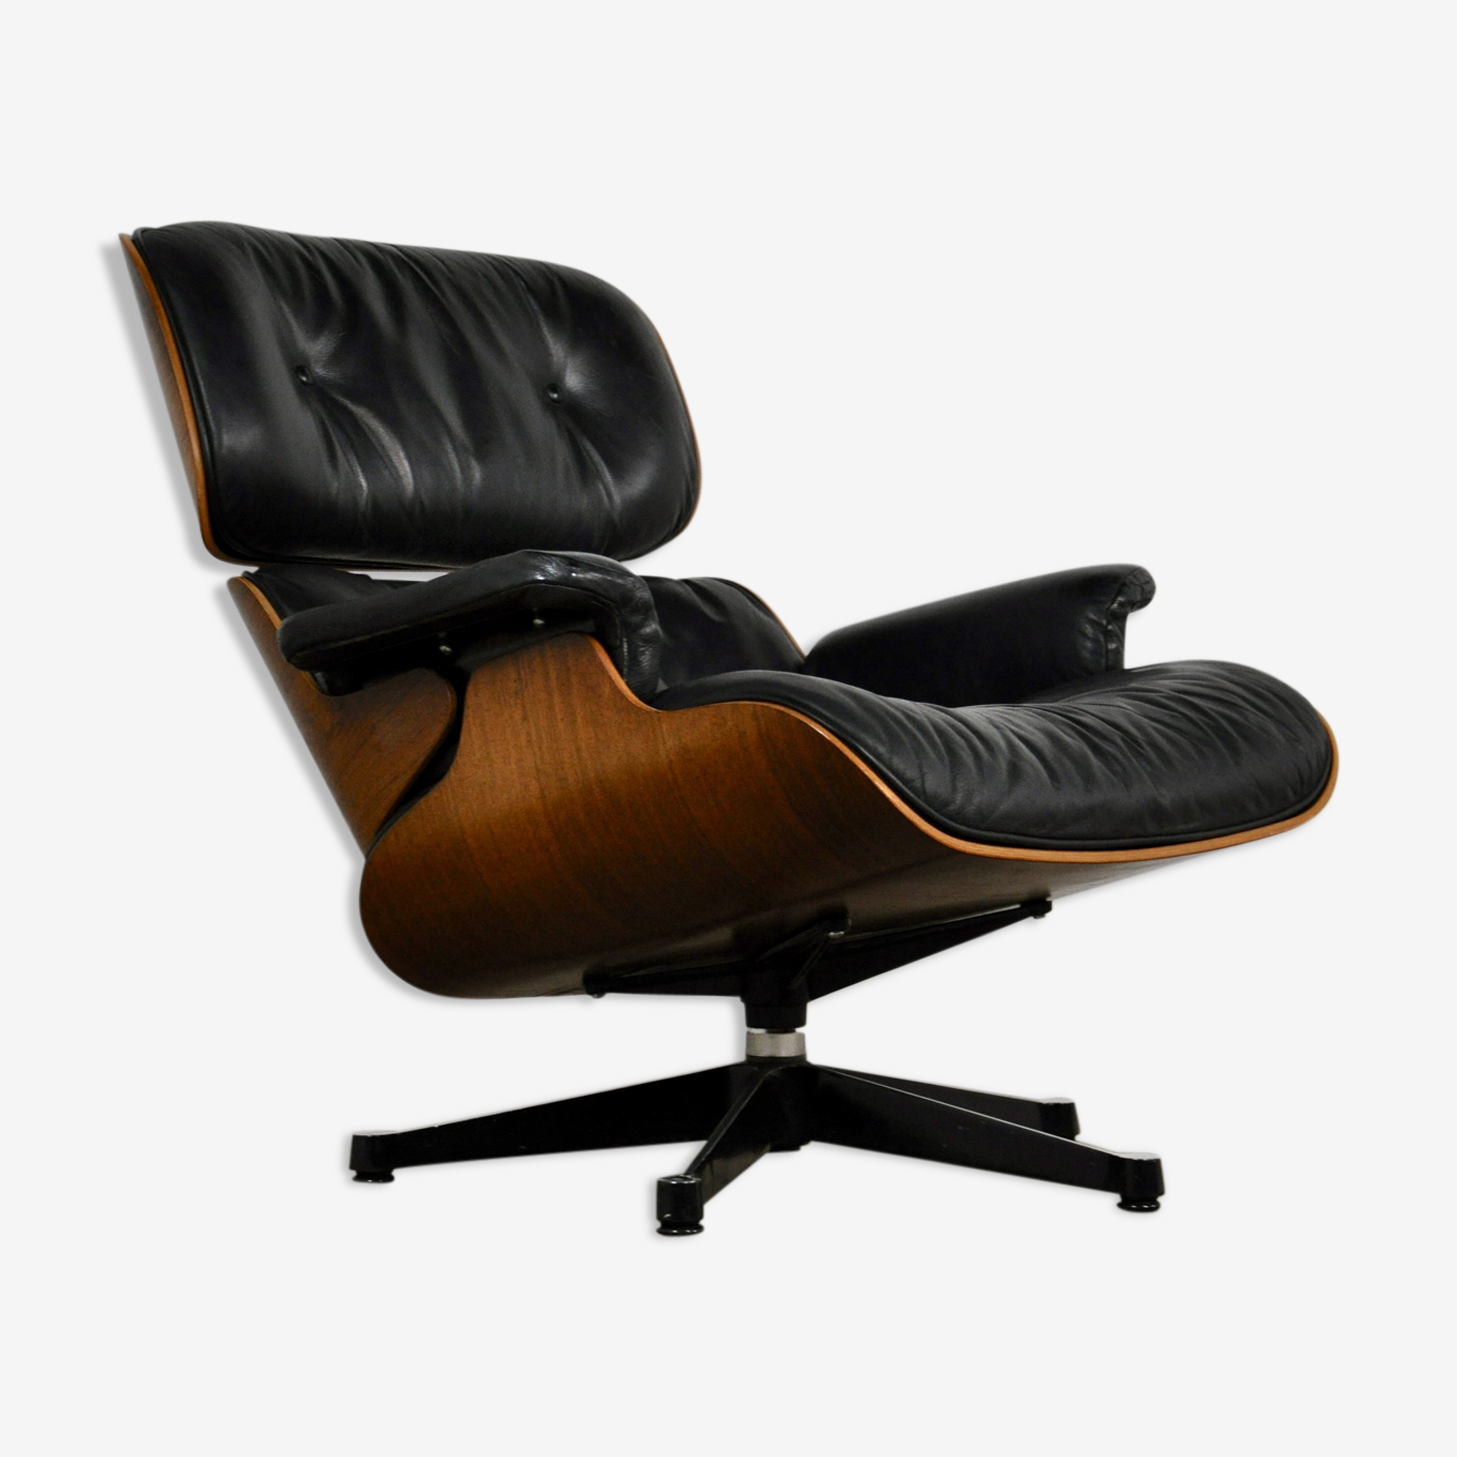 Lounge chair by Charles & Ray Eames For Herman Miller 1970